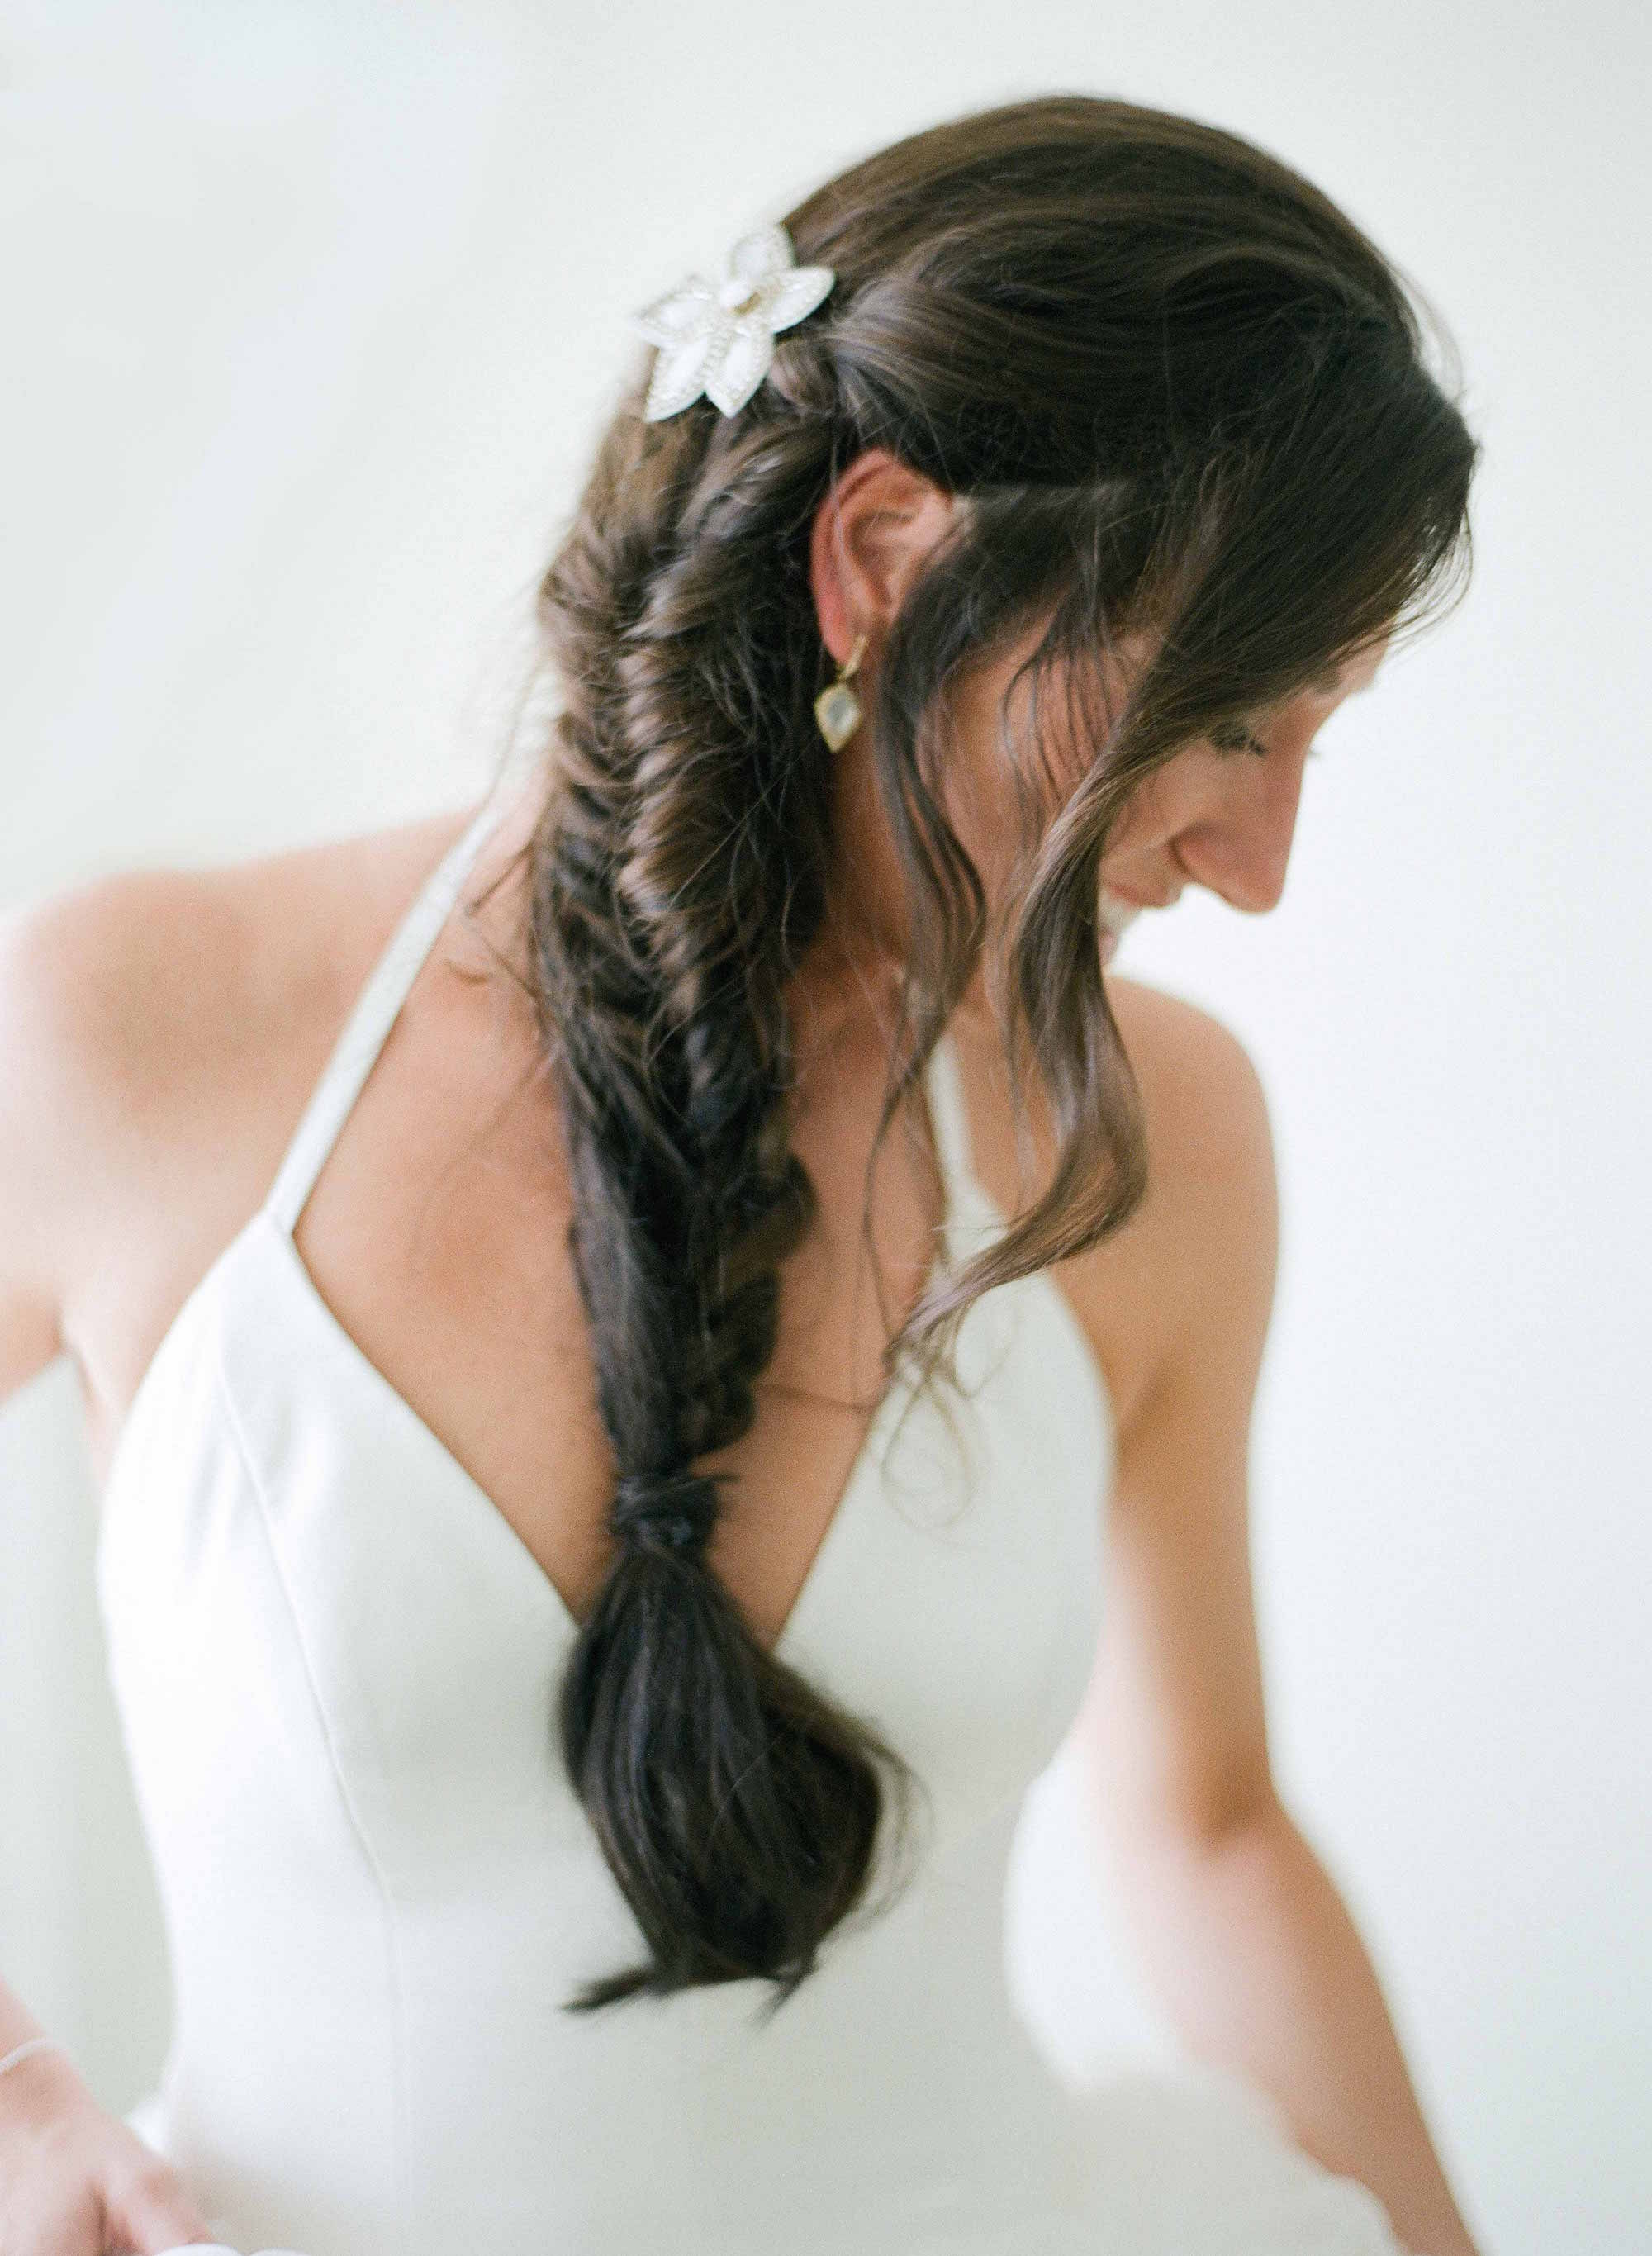 Flower hair accessory with bride in braid